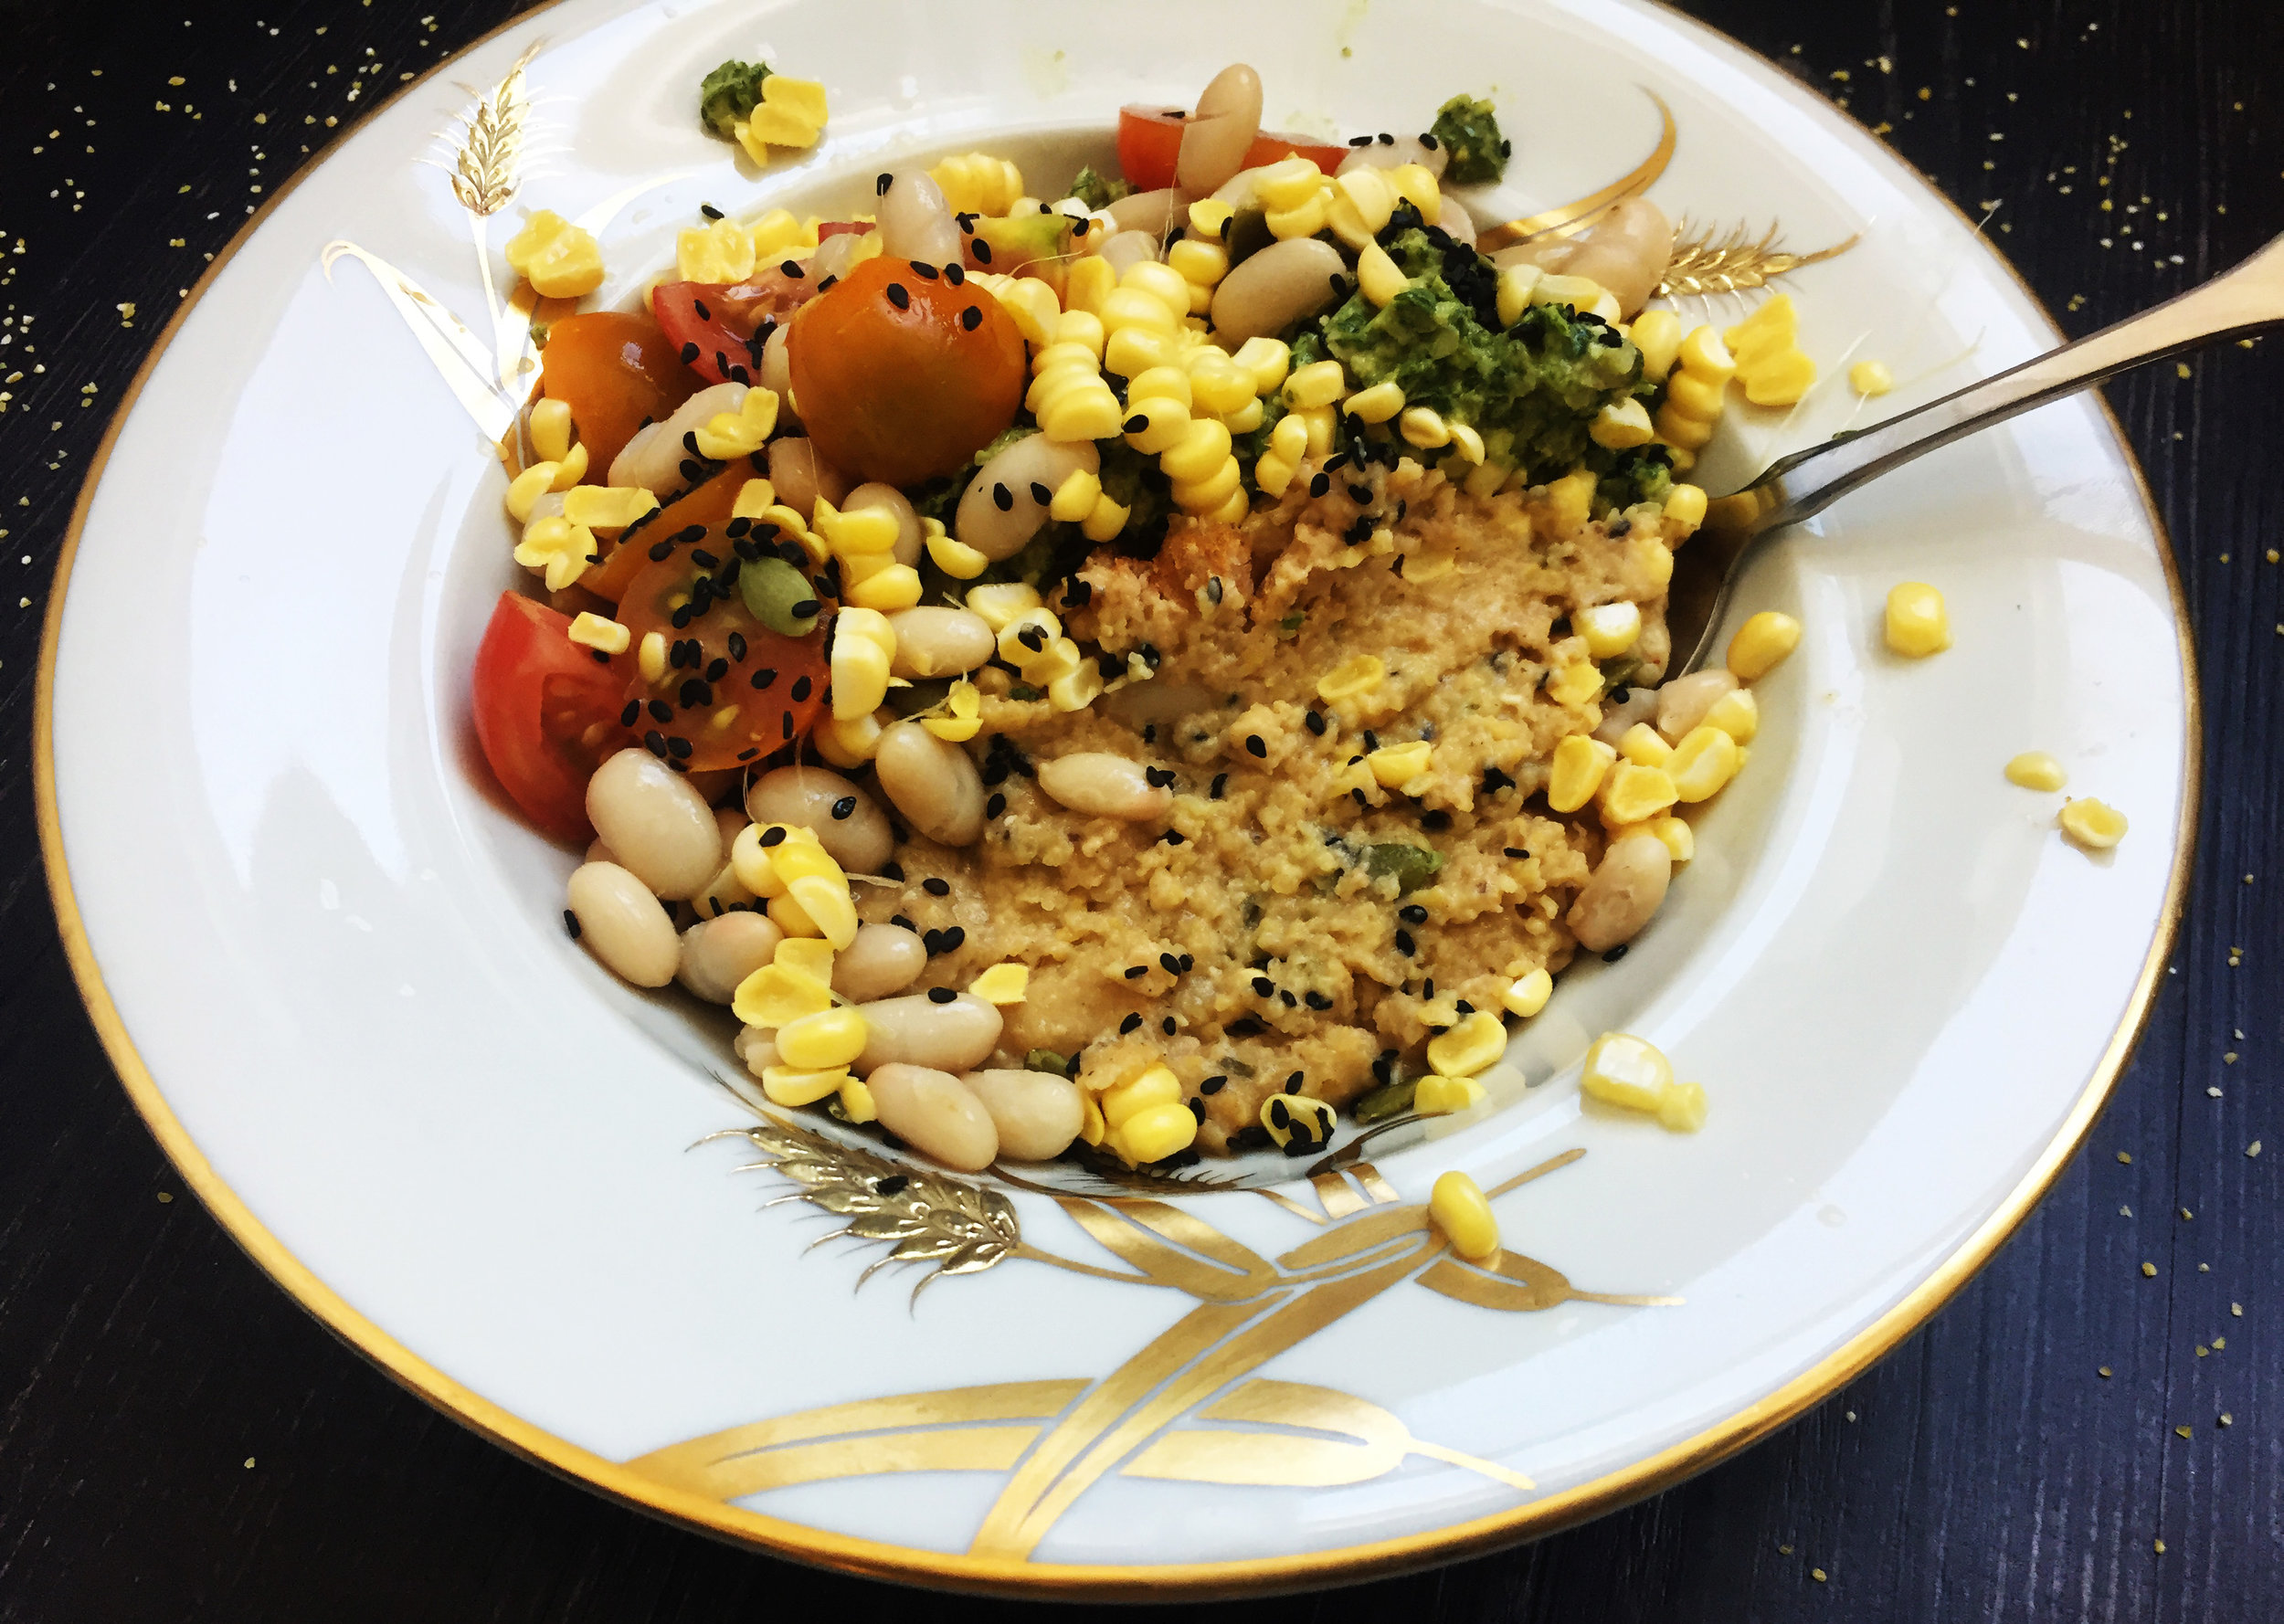 5. To plate, spoon in 1/2 - 1/4 of the grits into a bowl, top with corn kernels, beans, pesto, and tomatoes.